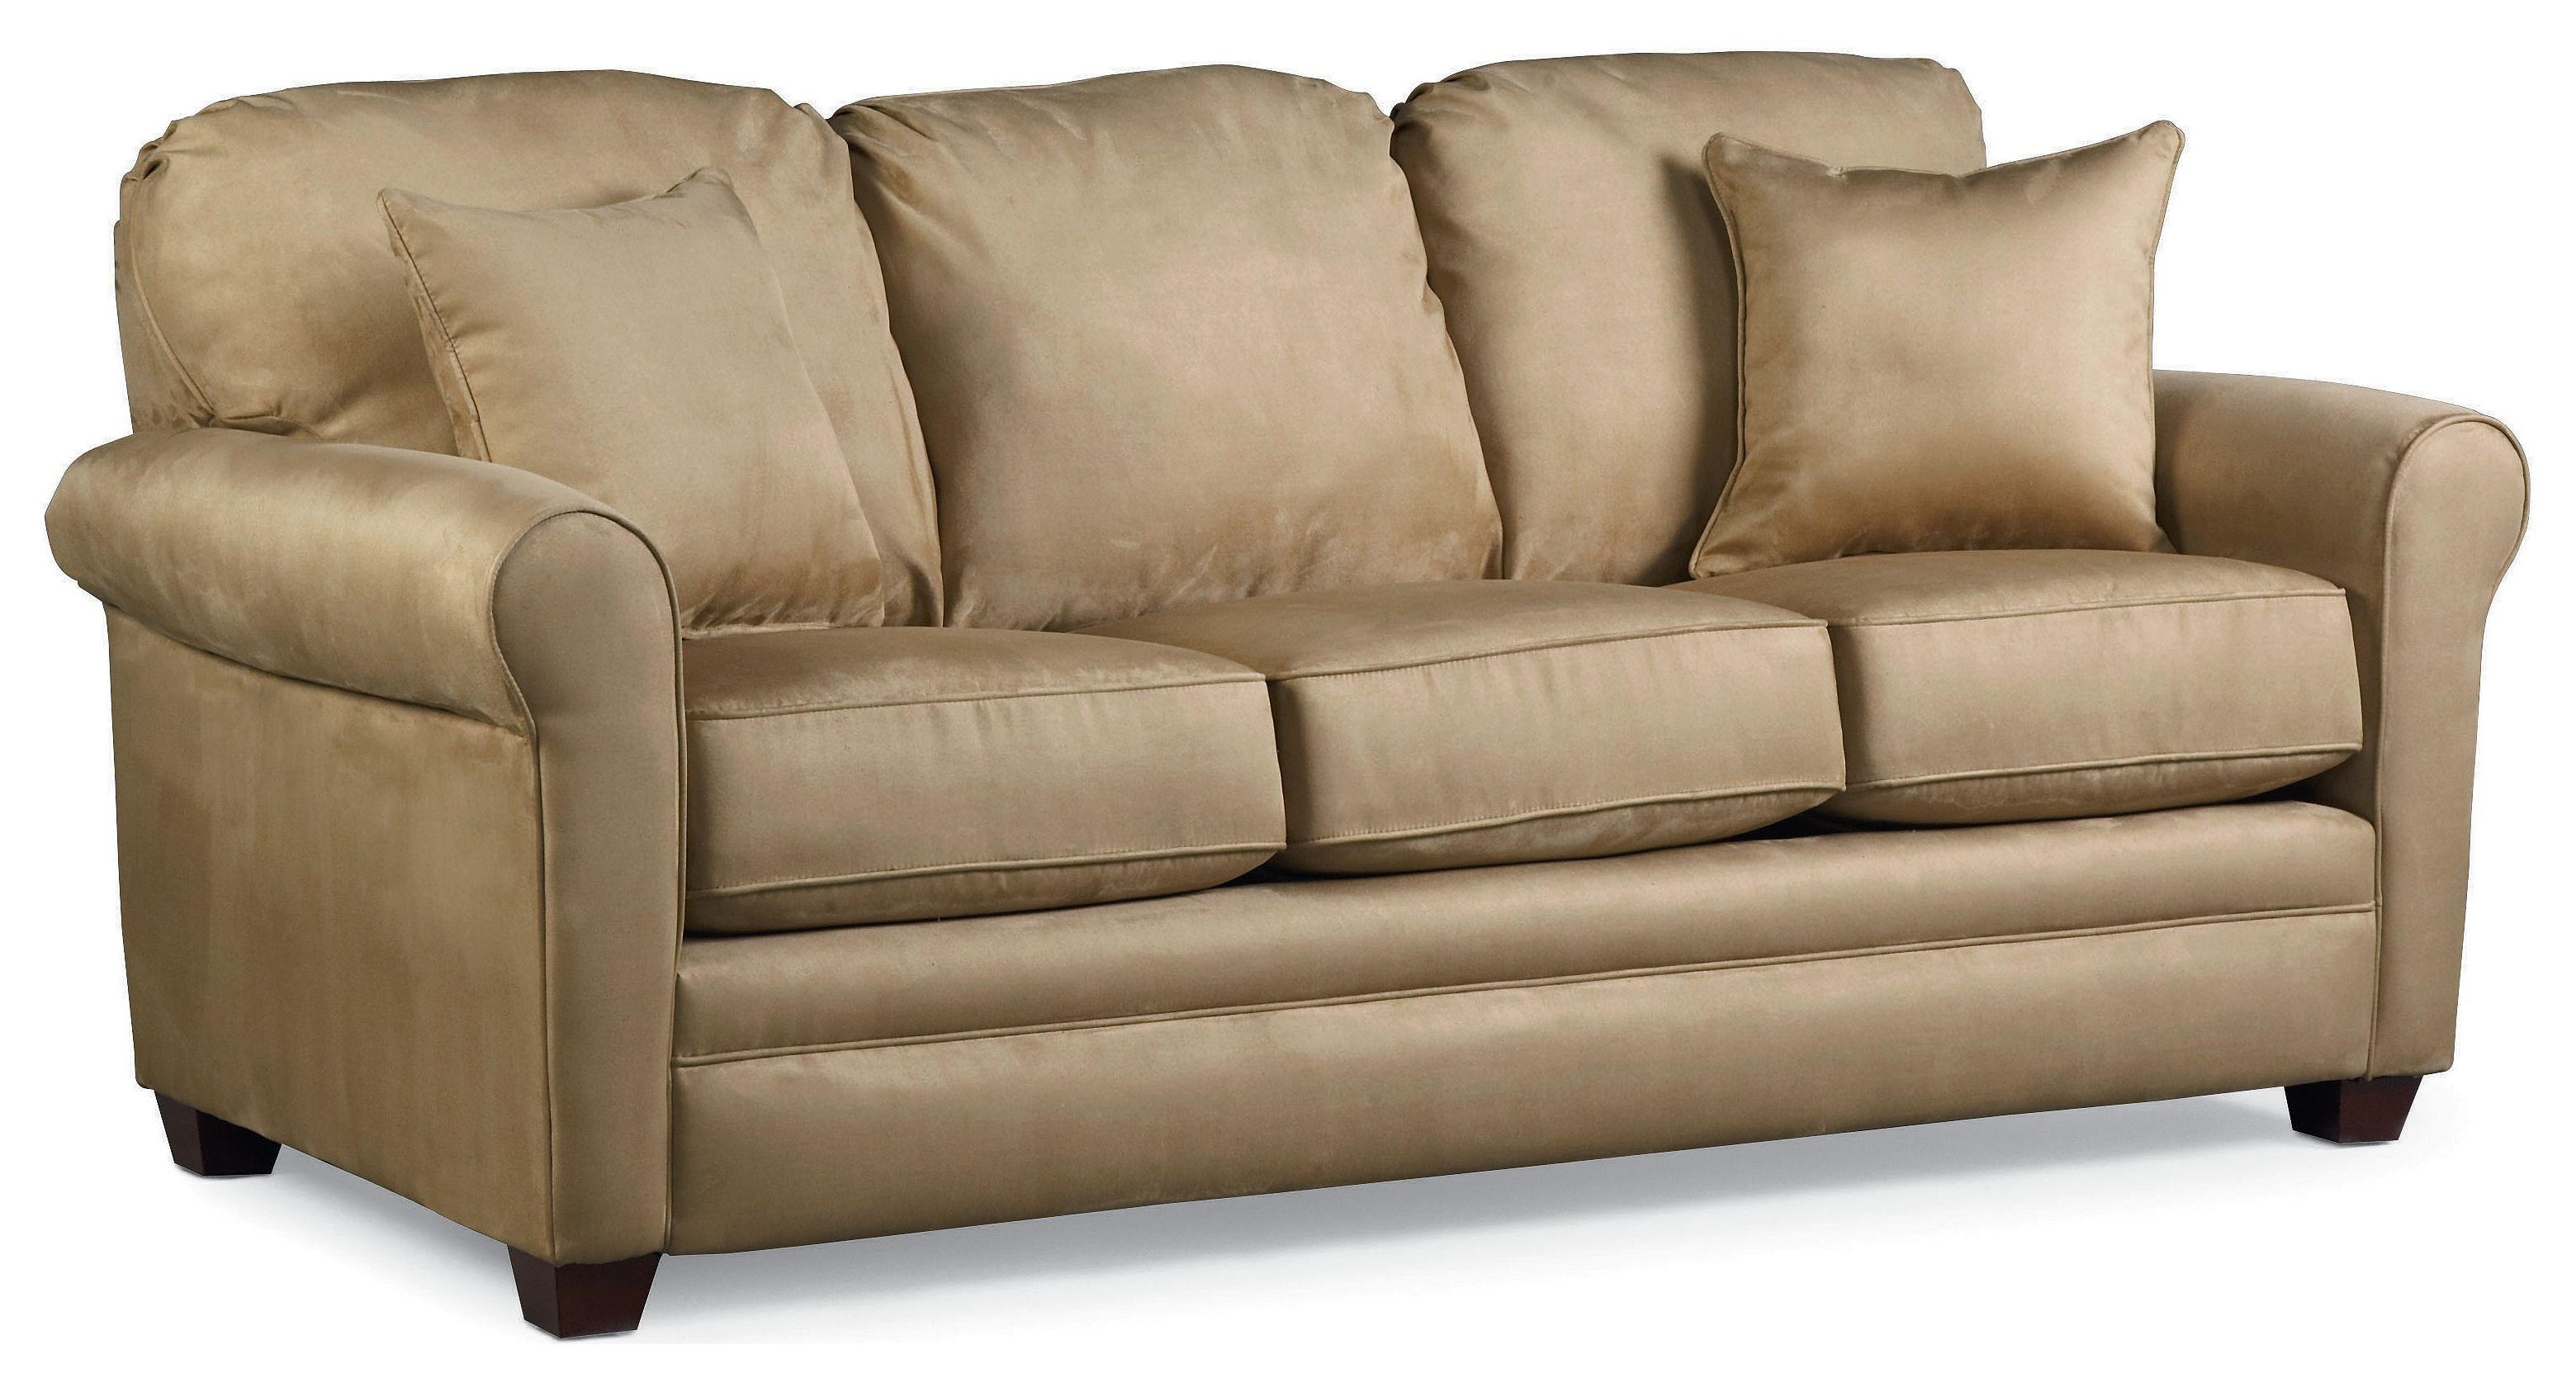 Sofas Center : Best Queen Sleeper Sofa Sheets Size Ikeasleeper With Regard To Queen Sleeper Sofa Sheets (View 17 of 20)